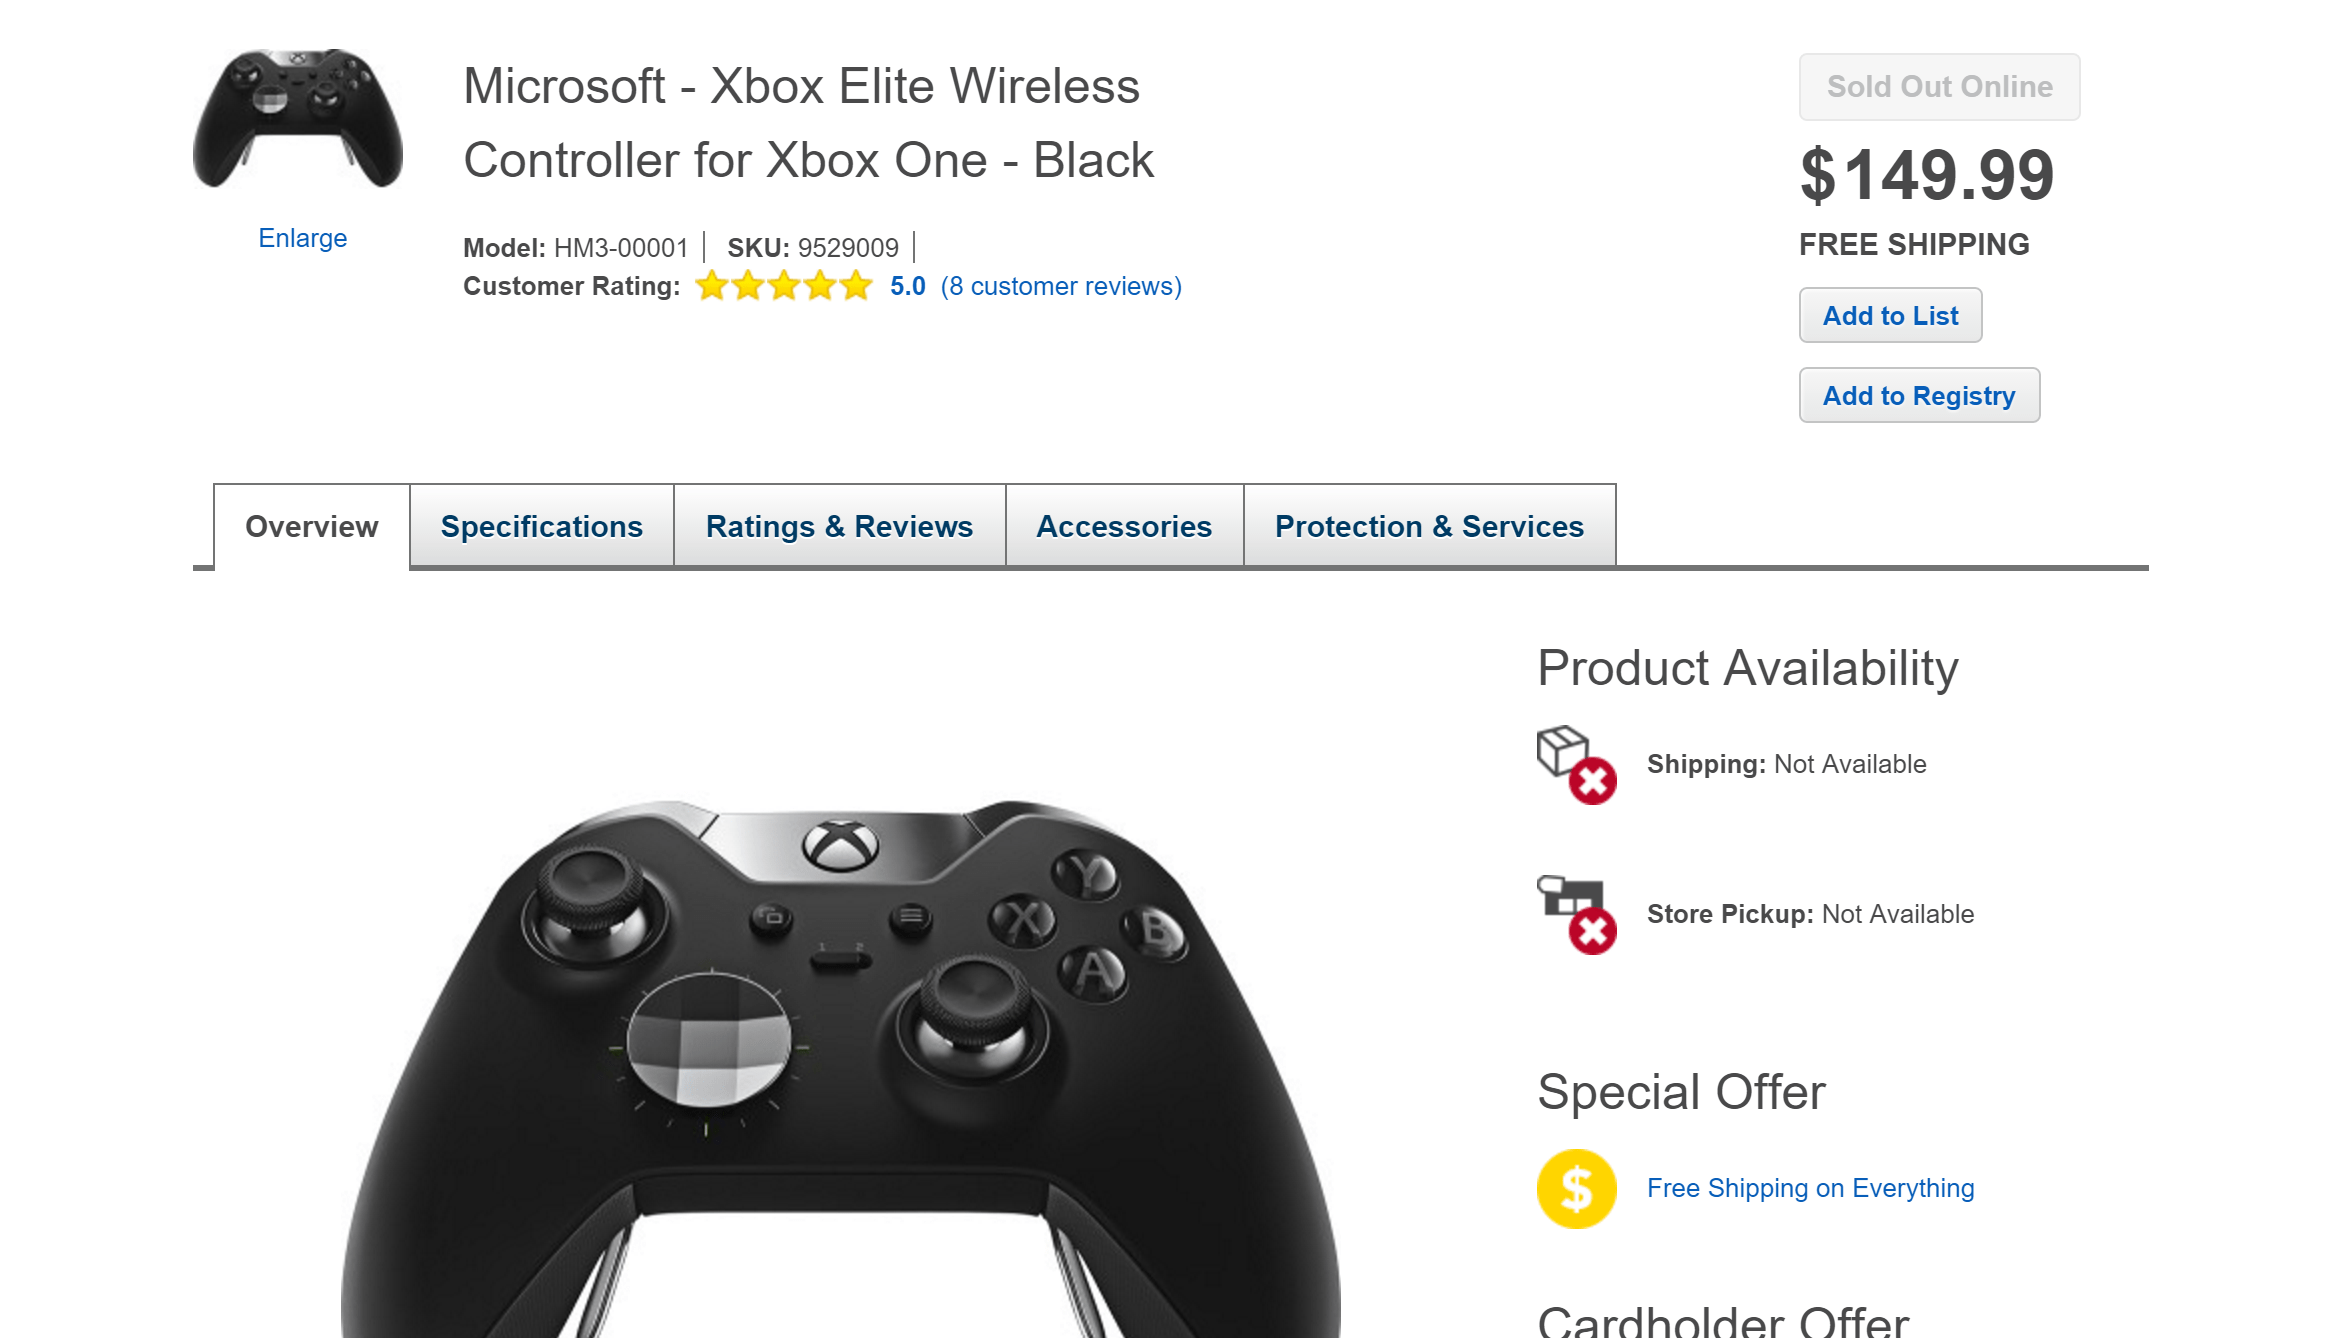 Gamestop Trade In Value For Xbox One Elite Controller